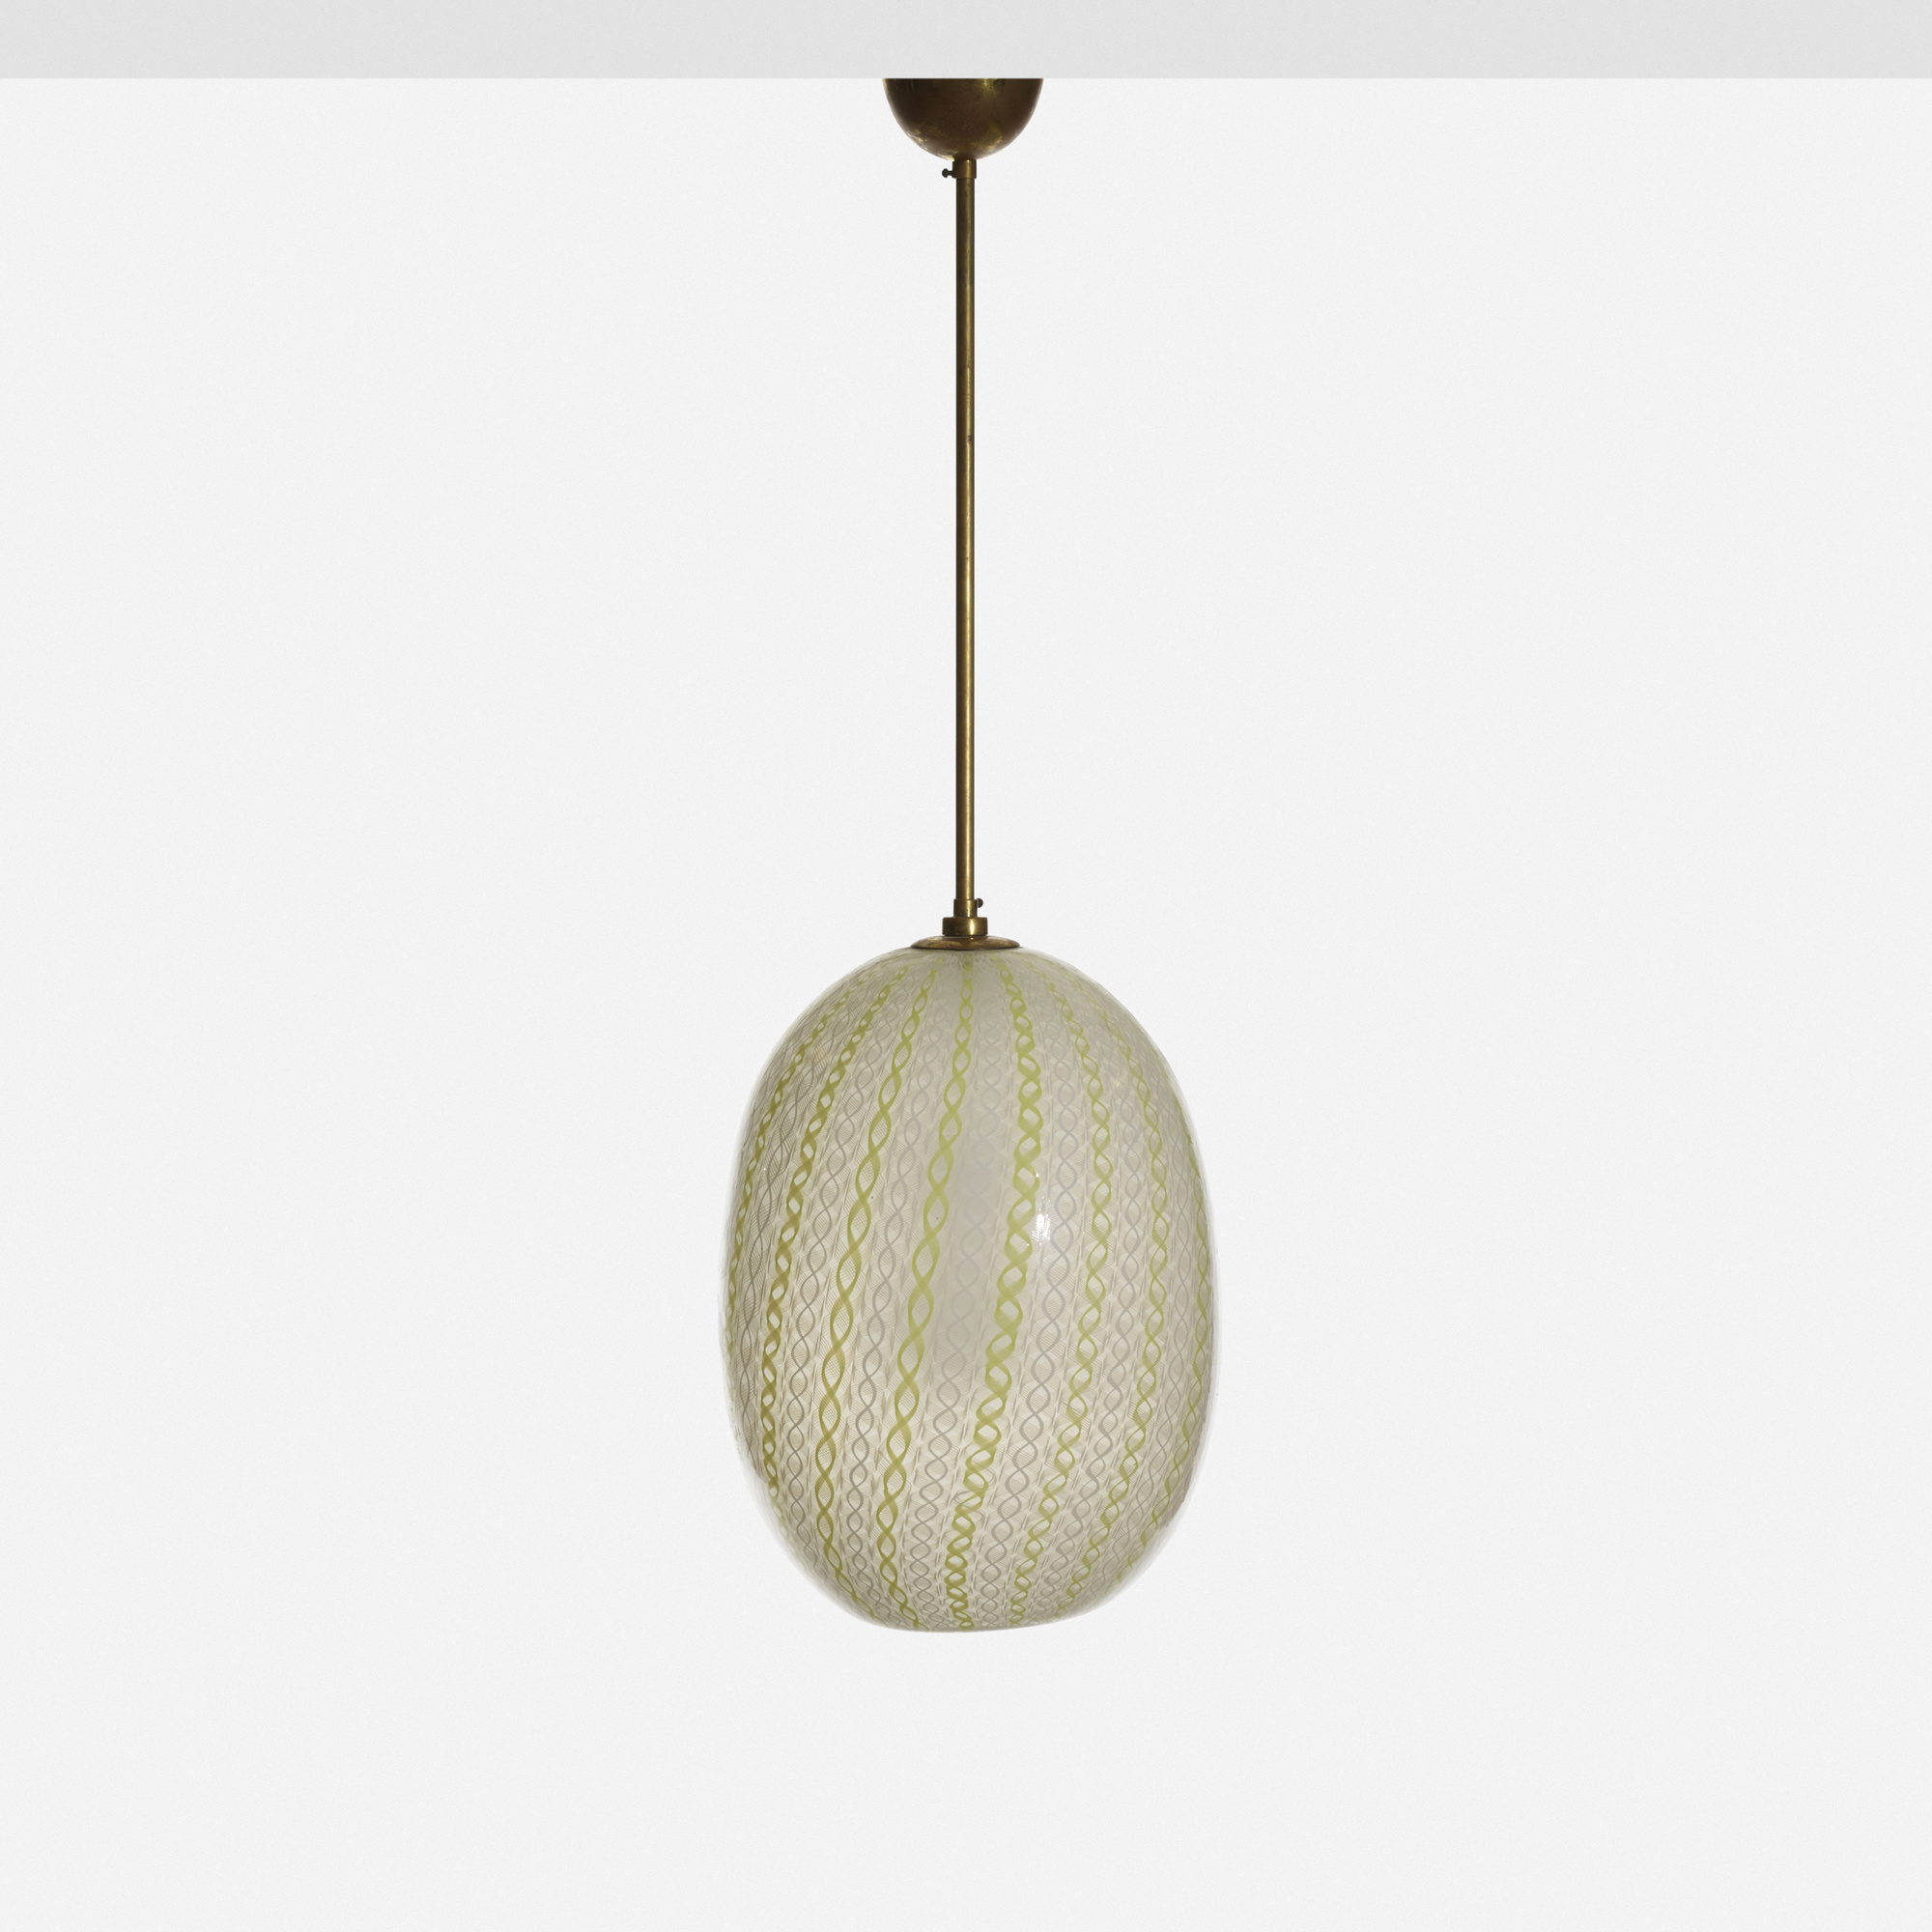 413: Venini / pendant lamp (1 of 1)